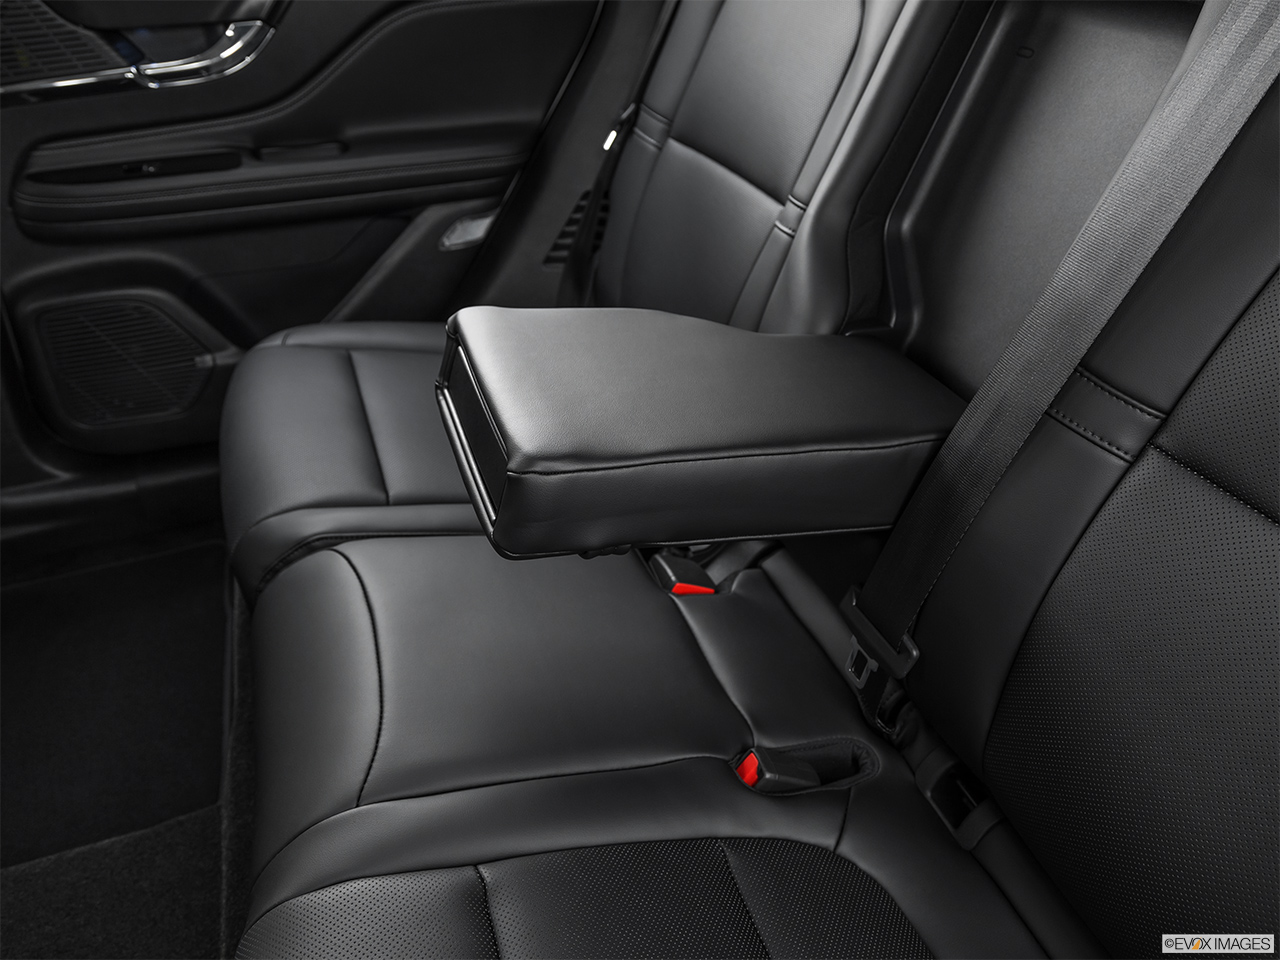 2020 Lincoln Corsair Standard Rear center console with closed lid from driver's side looking down.